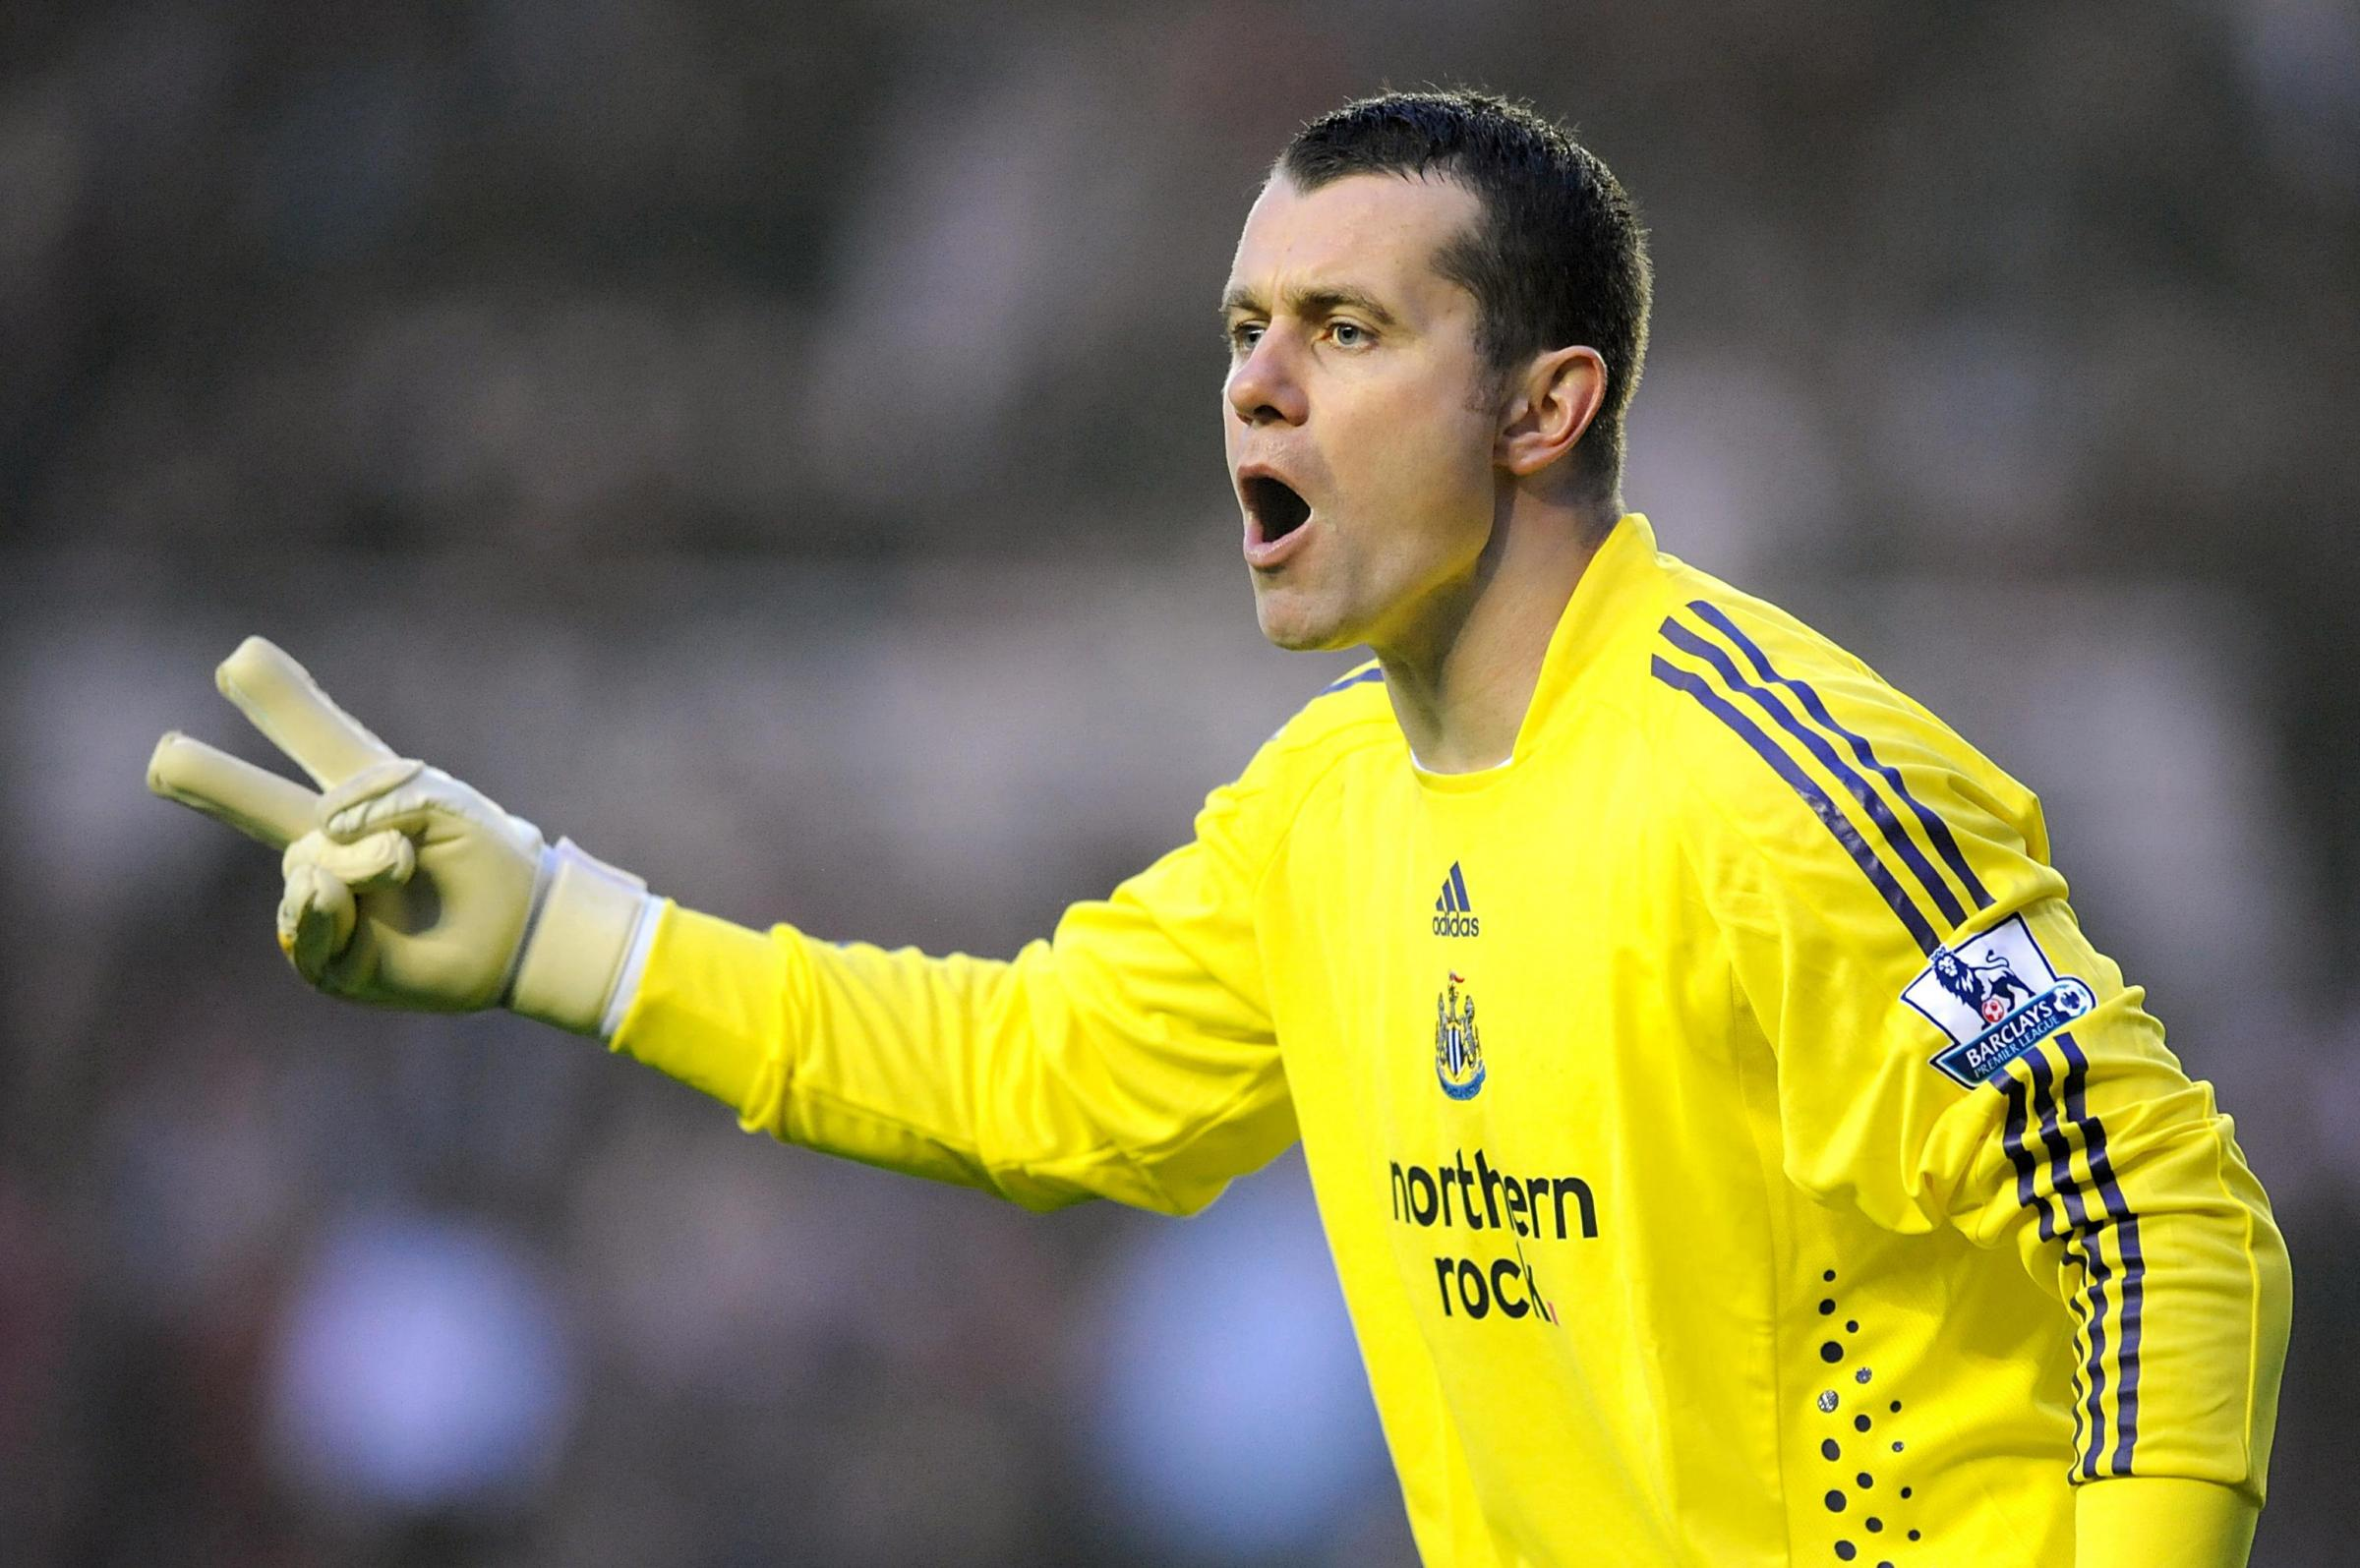 Enjoying his latest role: Shay Given is looking to keep Boro in the play-off picture as Newcastle prepare for Sunderland visit